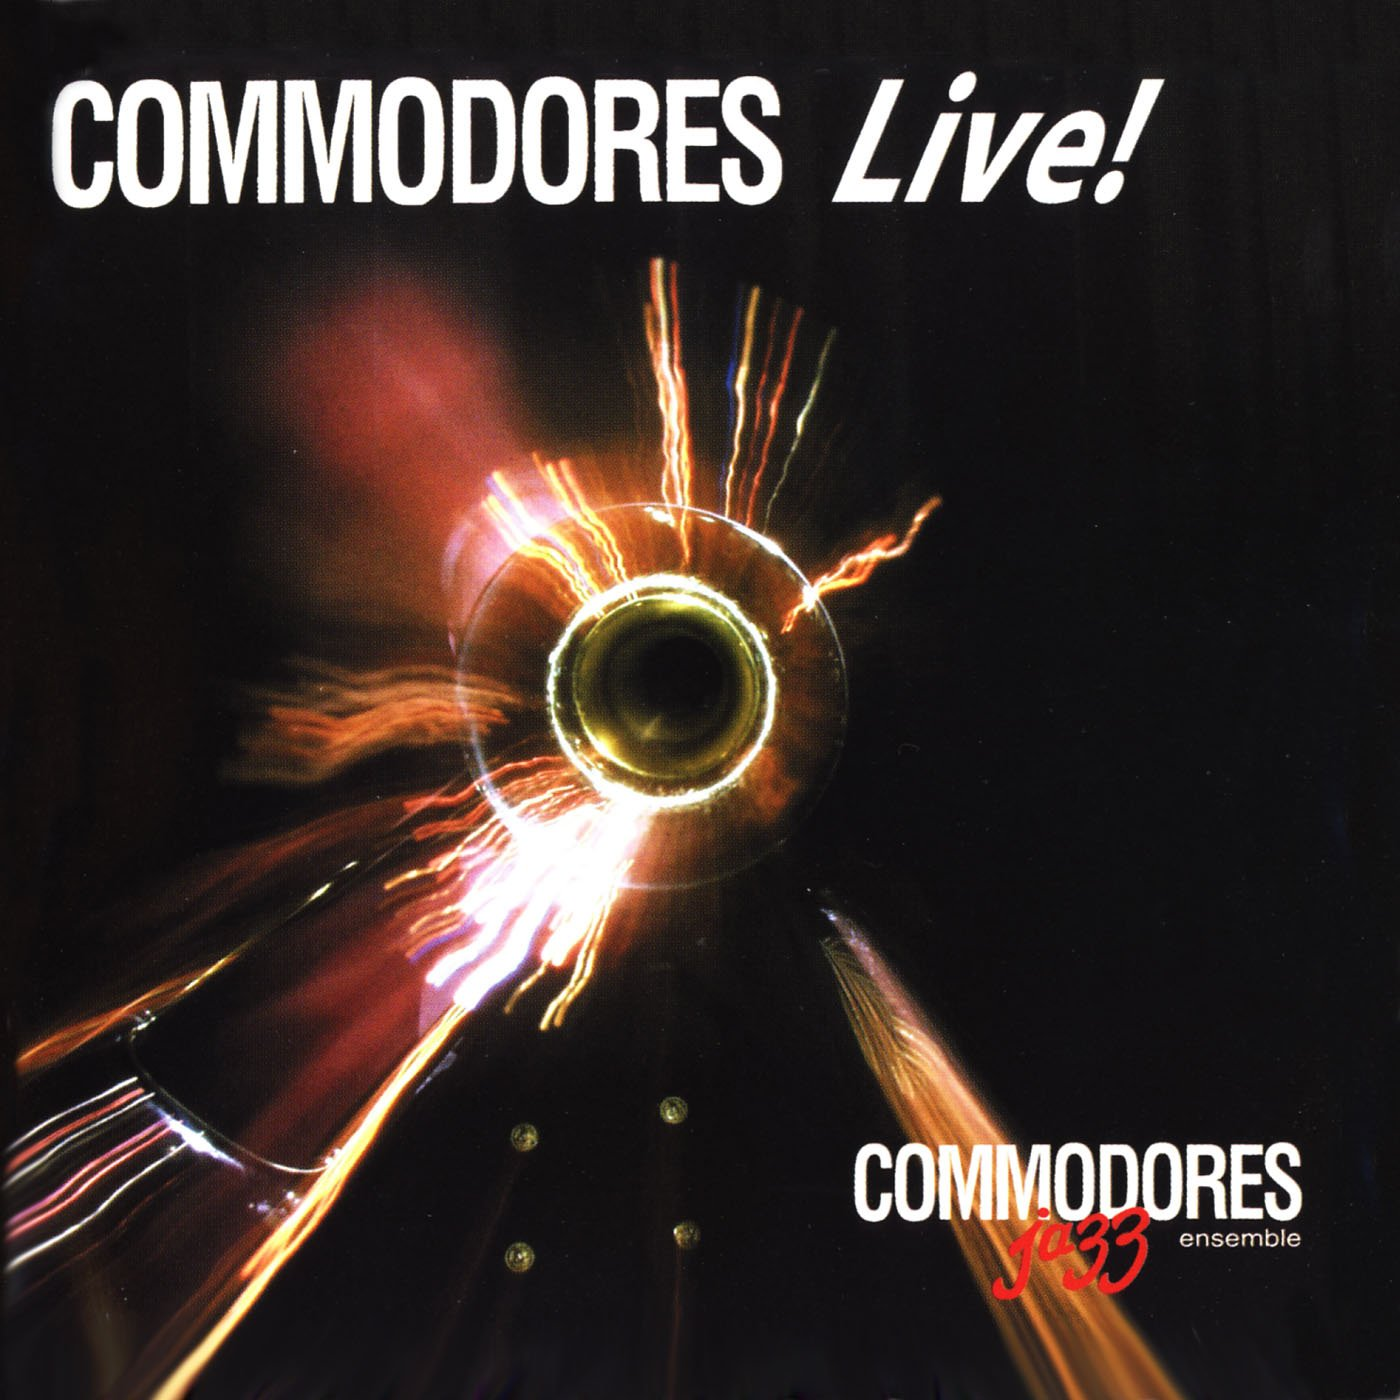 Commodores Live! by Altissimo! (Image #1)